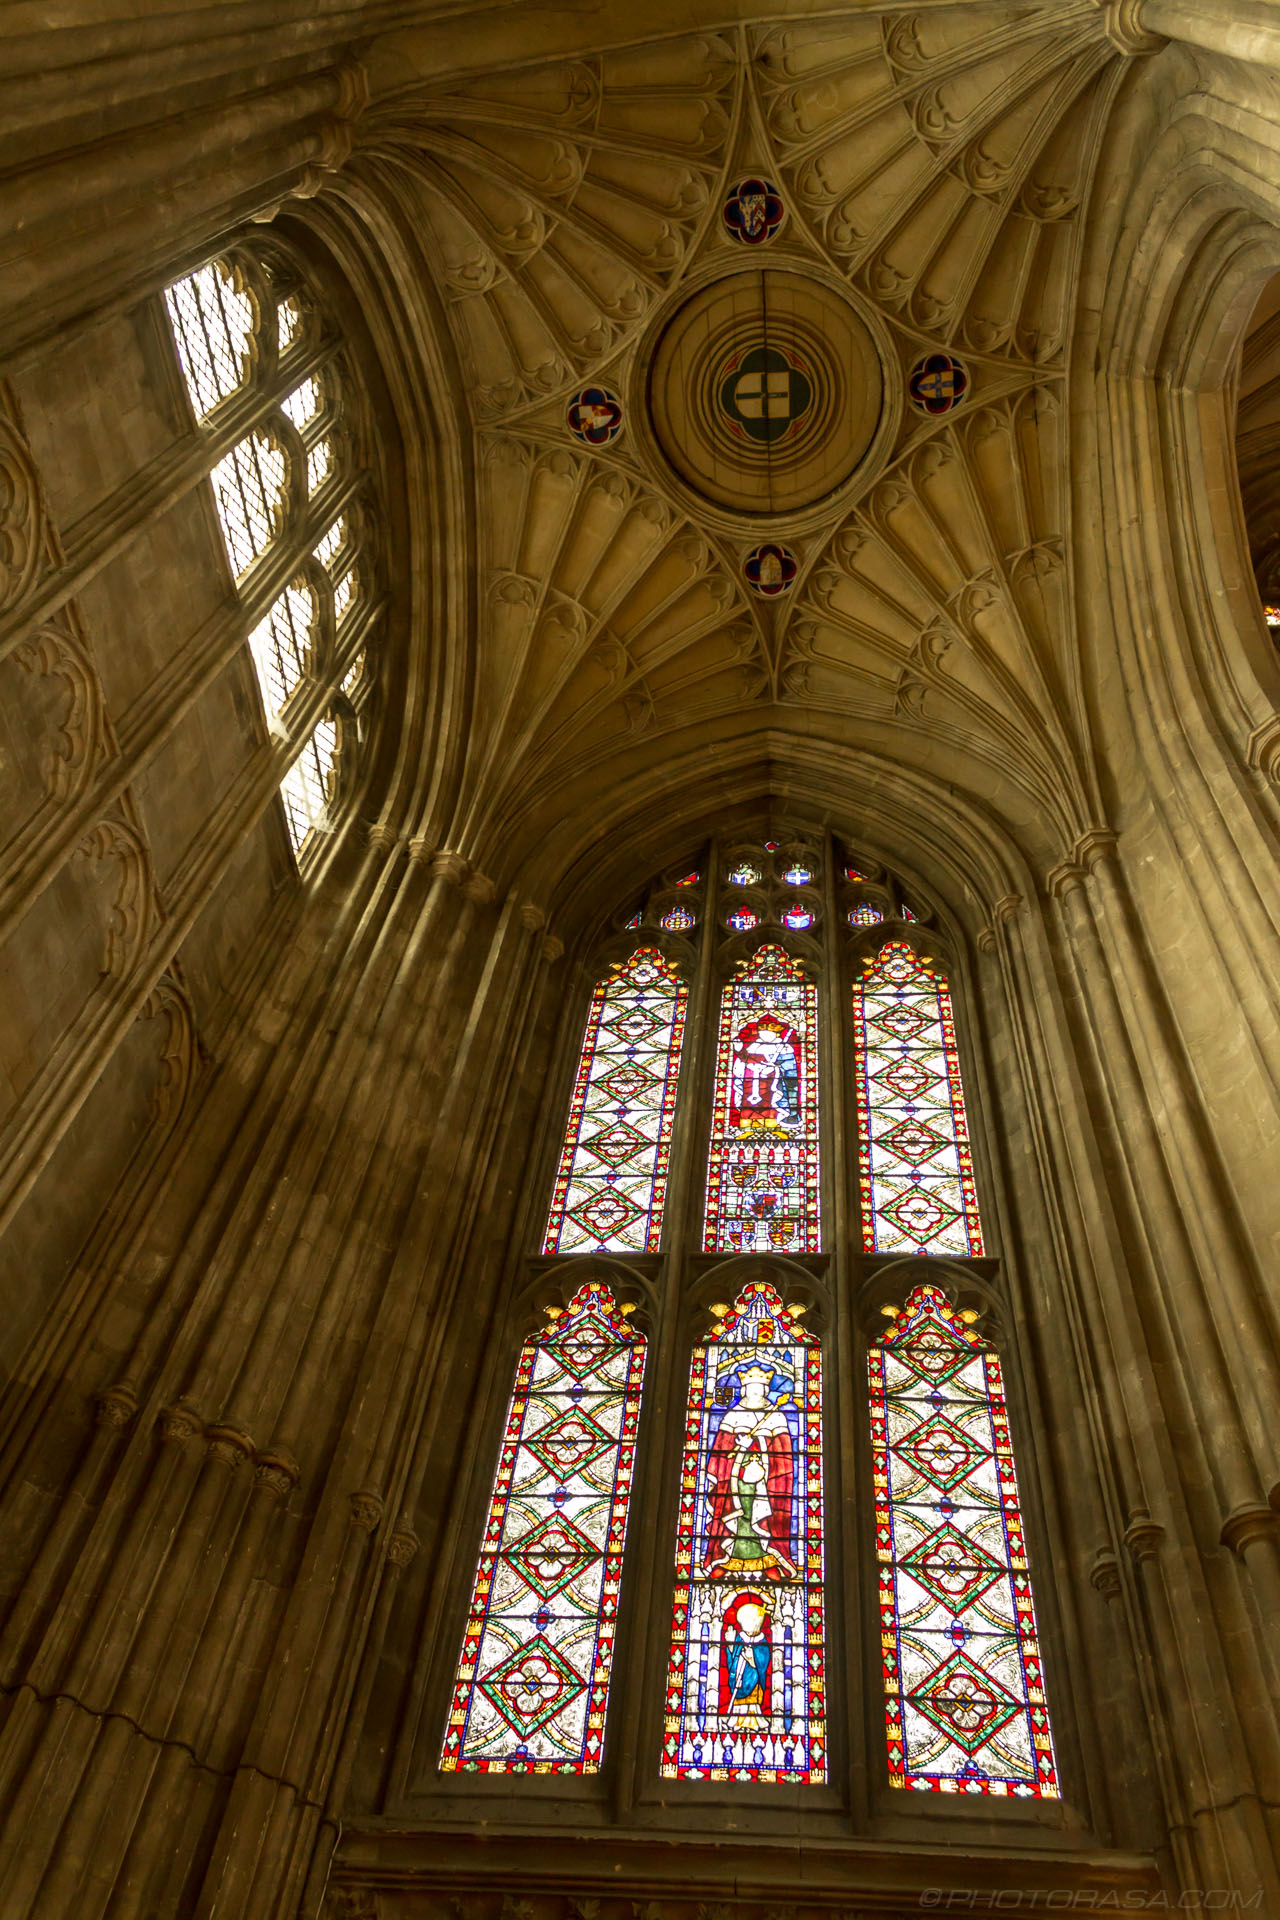 http://photorasa.com/canterbury-cathedral/fan-vaulted-ceiling-at-south-porch/